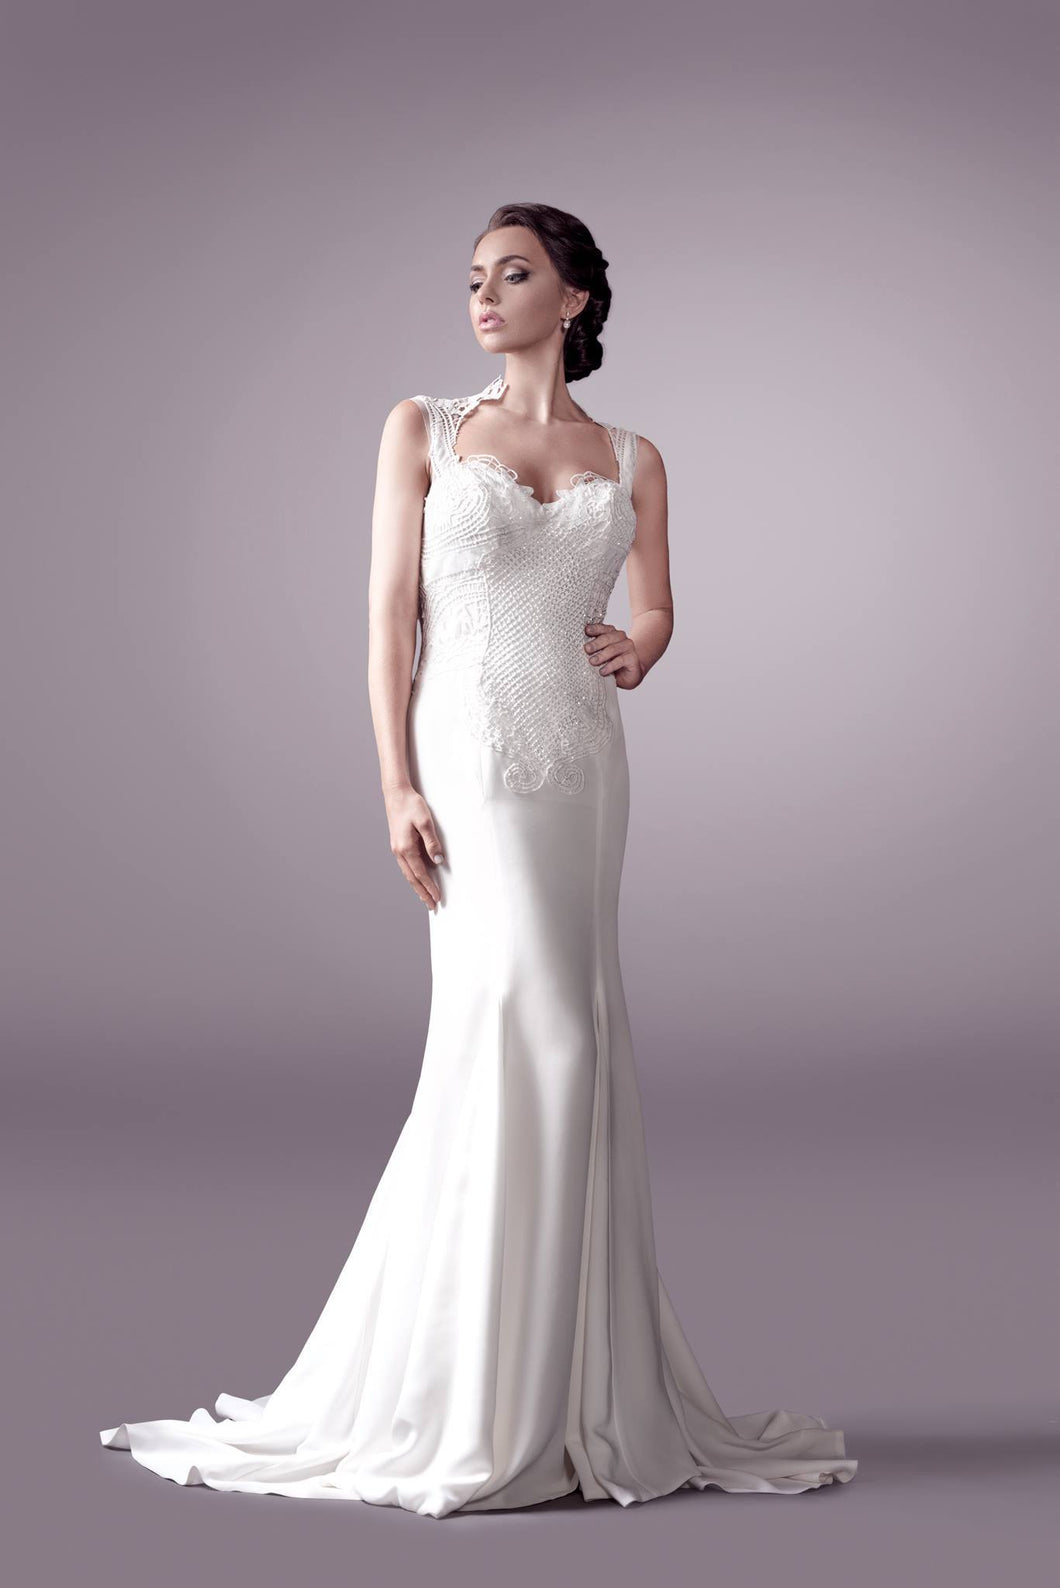 Rosa wedding dress bridal gown Perth 9326 F